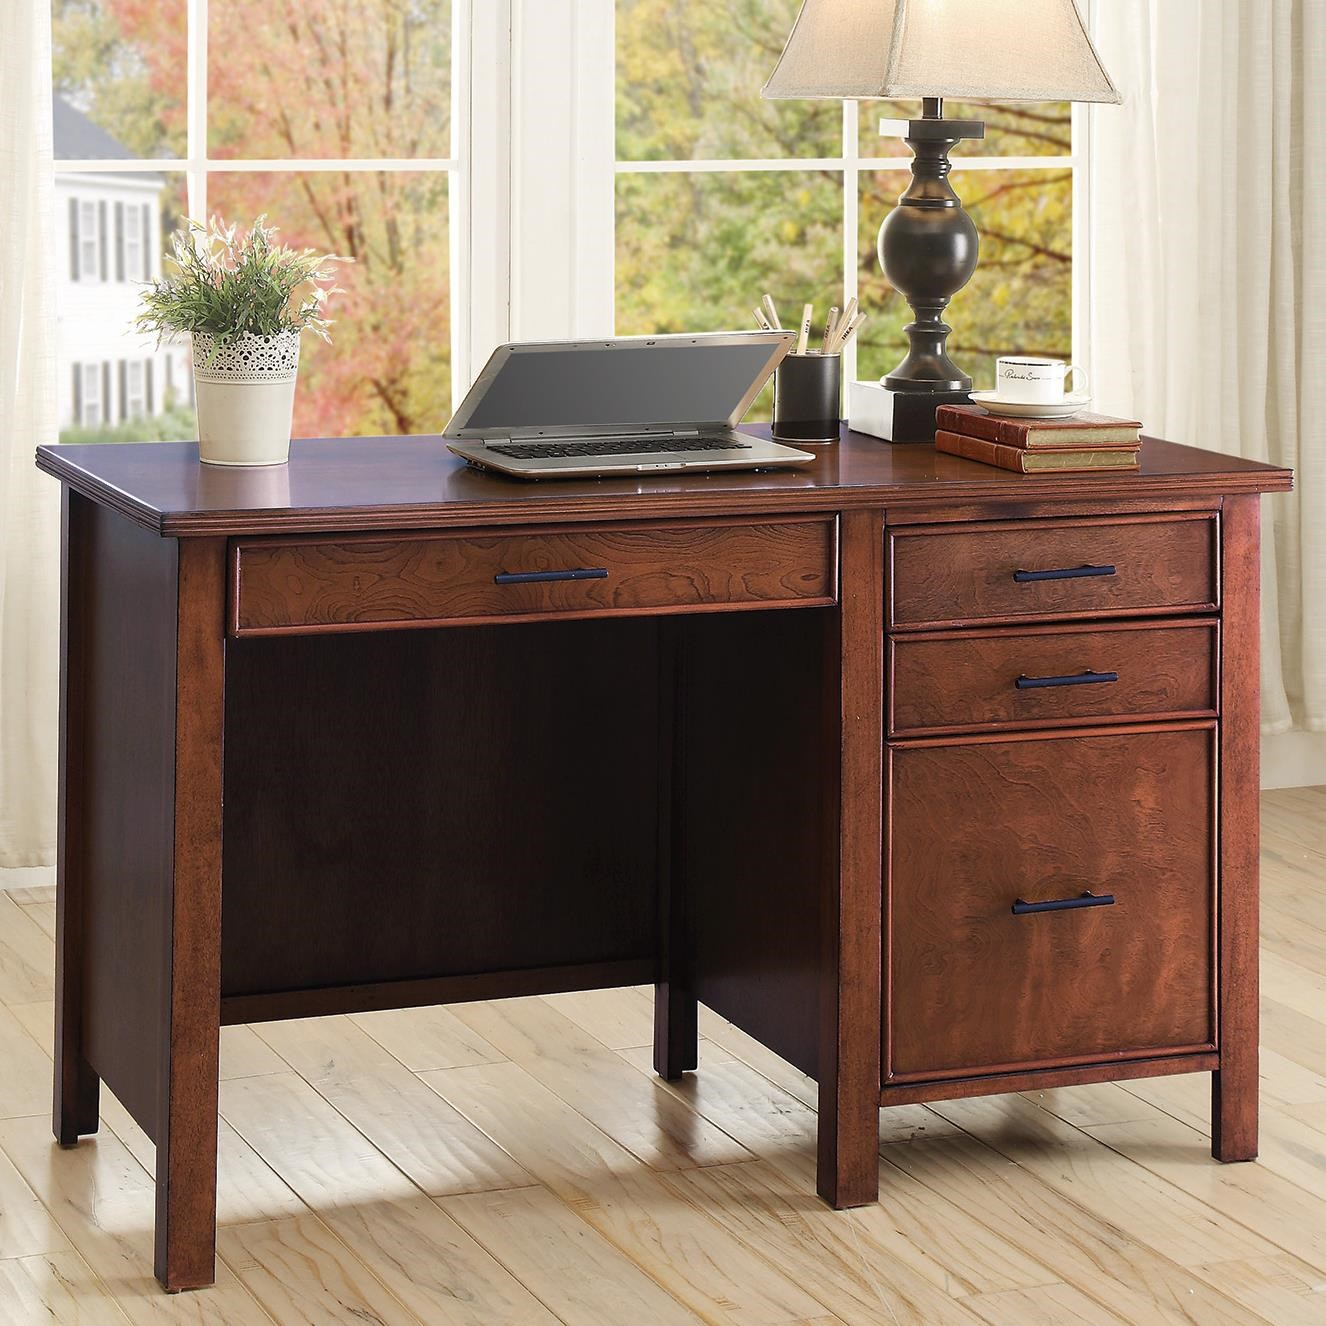 Coaster Writing Desk With File Drawer And Outlet   Coaster Fine Furniture